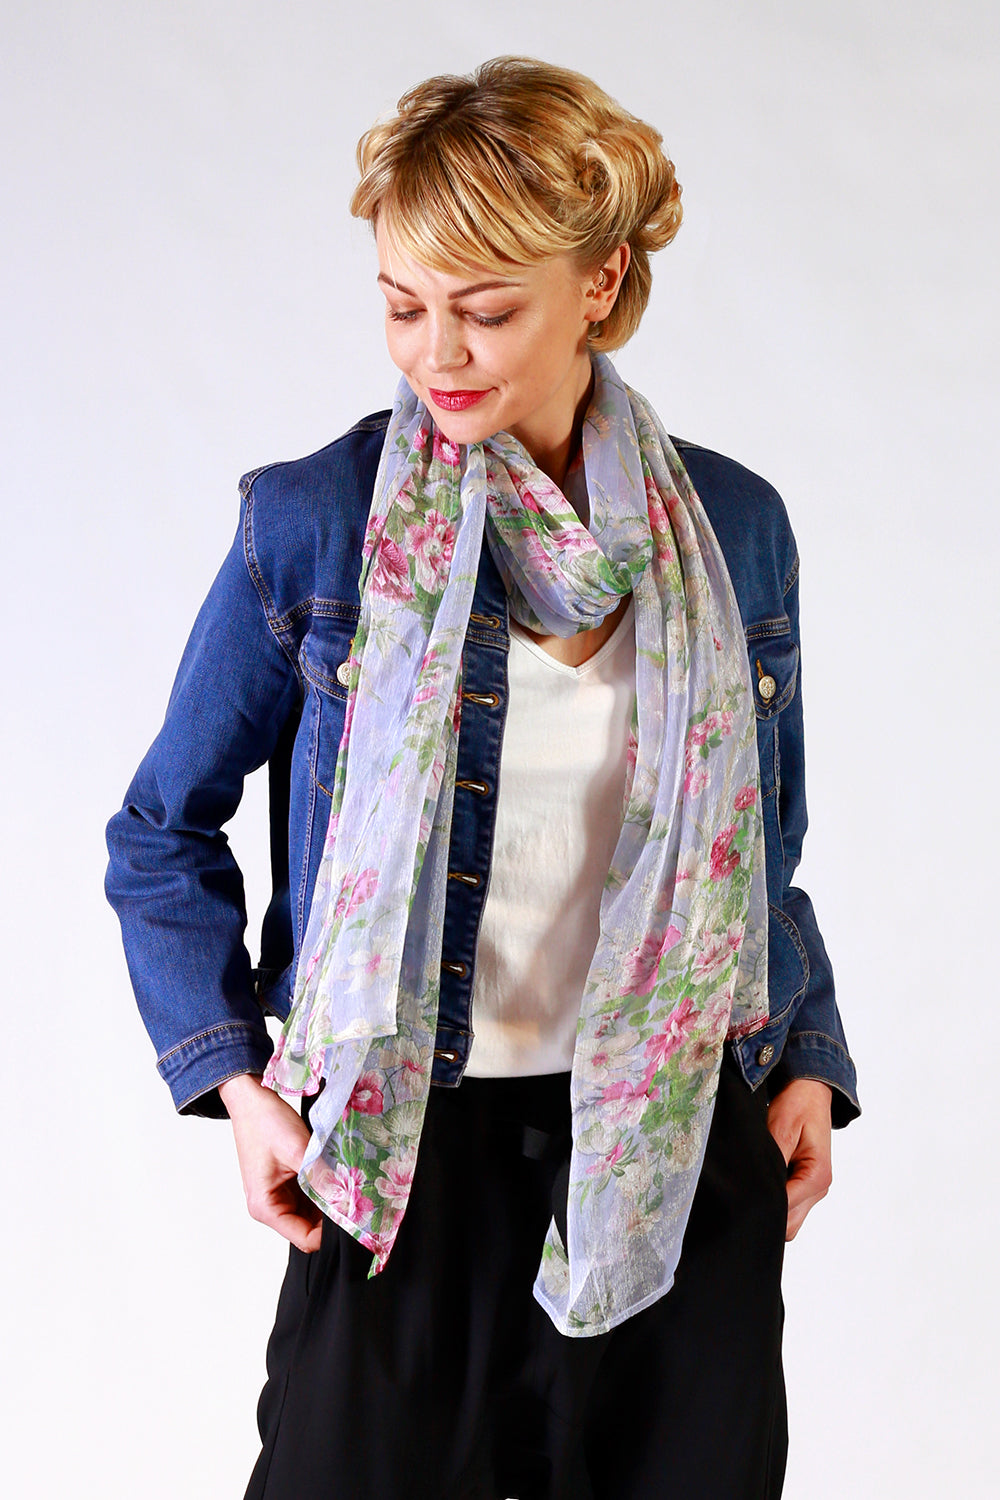 Lana Louise Scarf | Blue Floral Scarf | Designer Fashion Accessories | Scarves | Annah Stretton